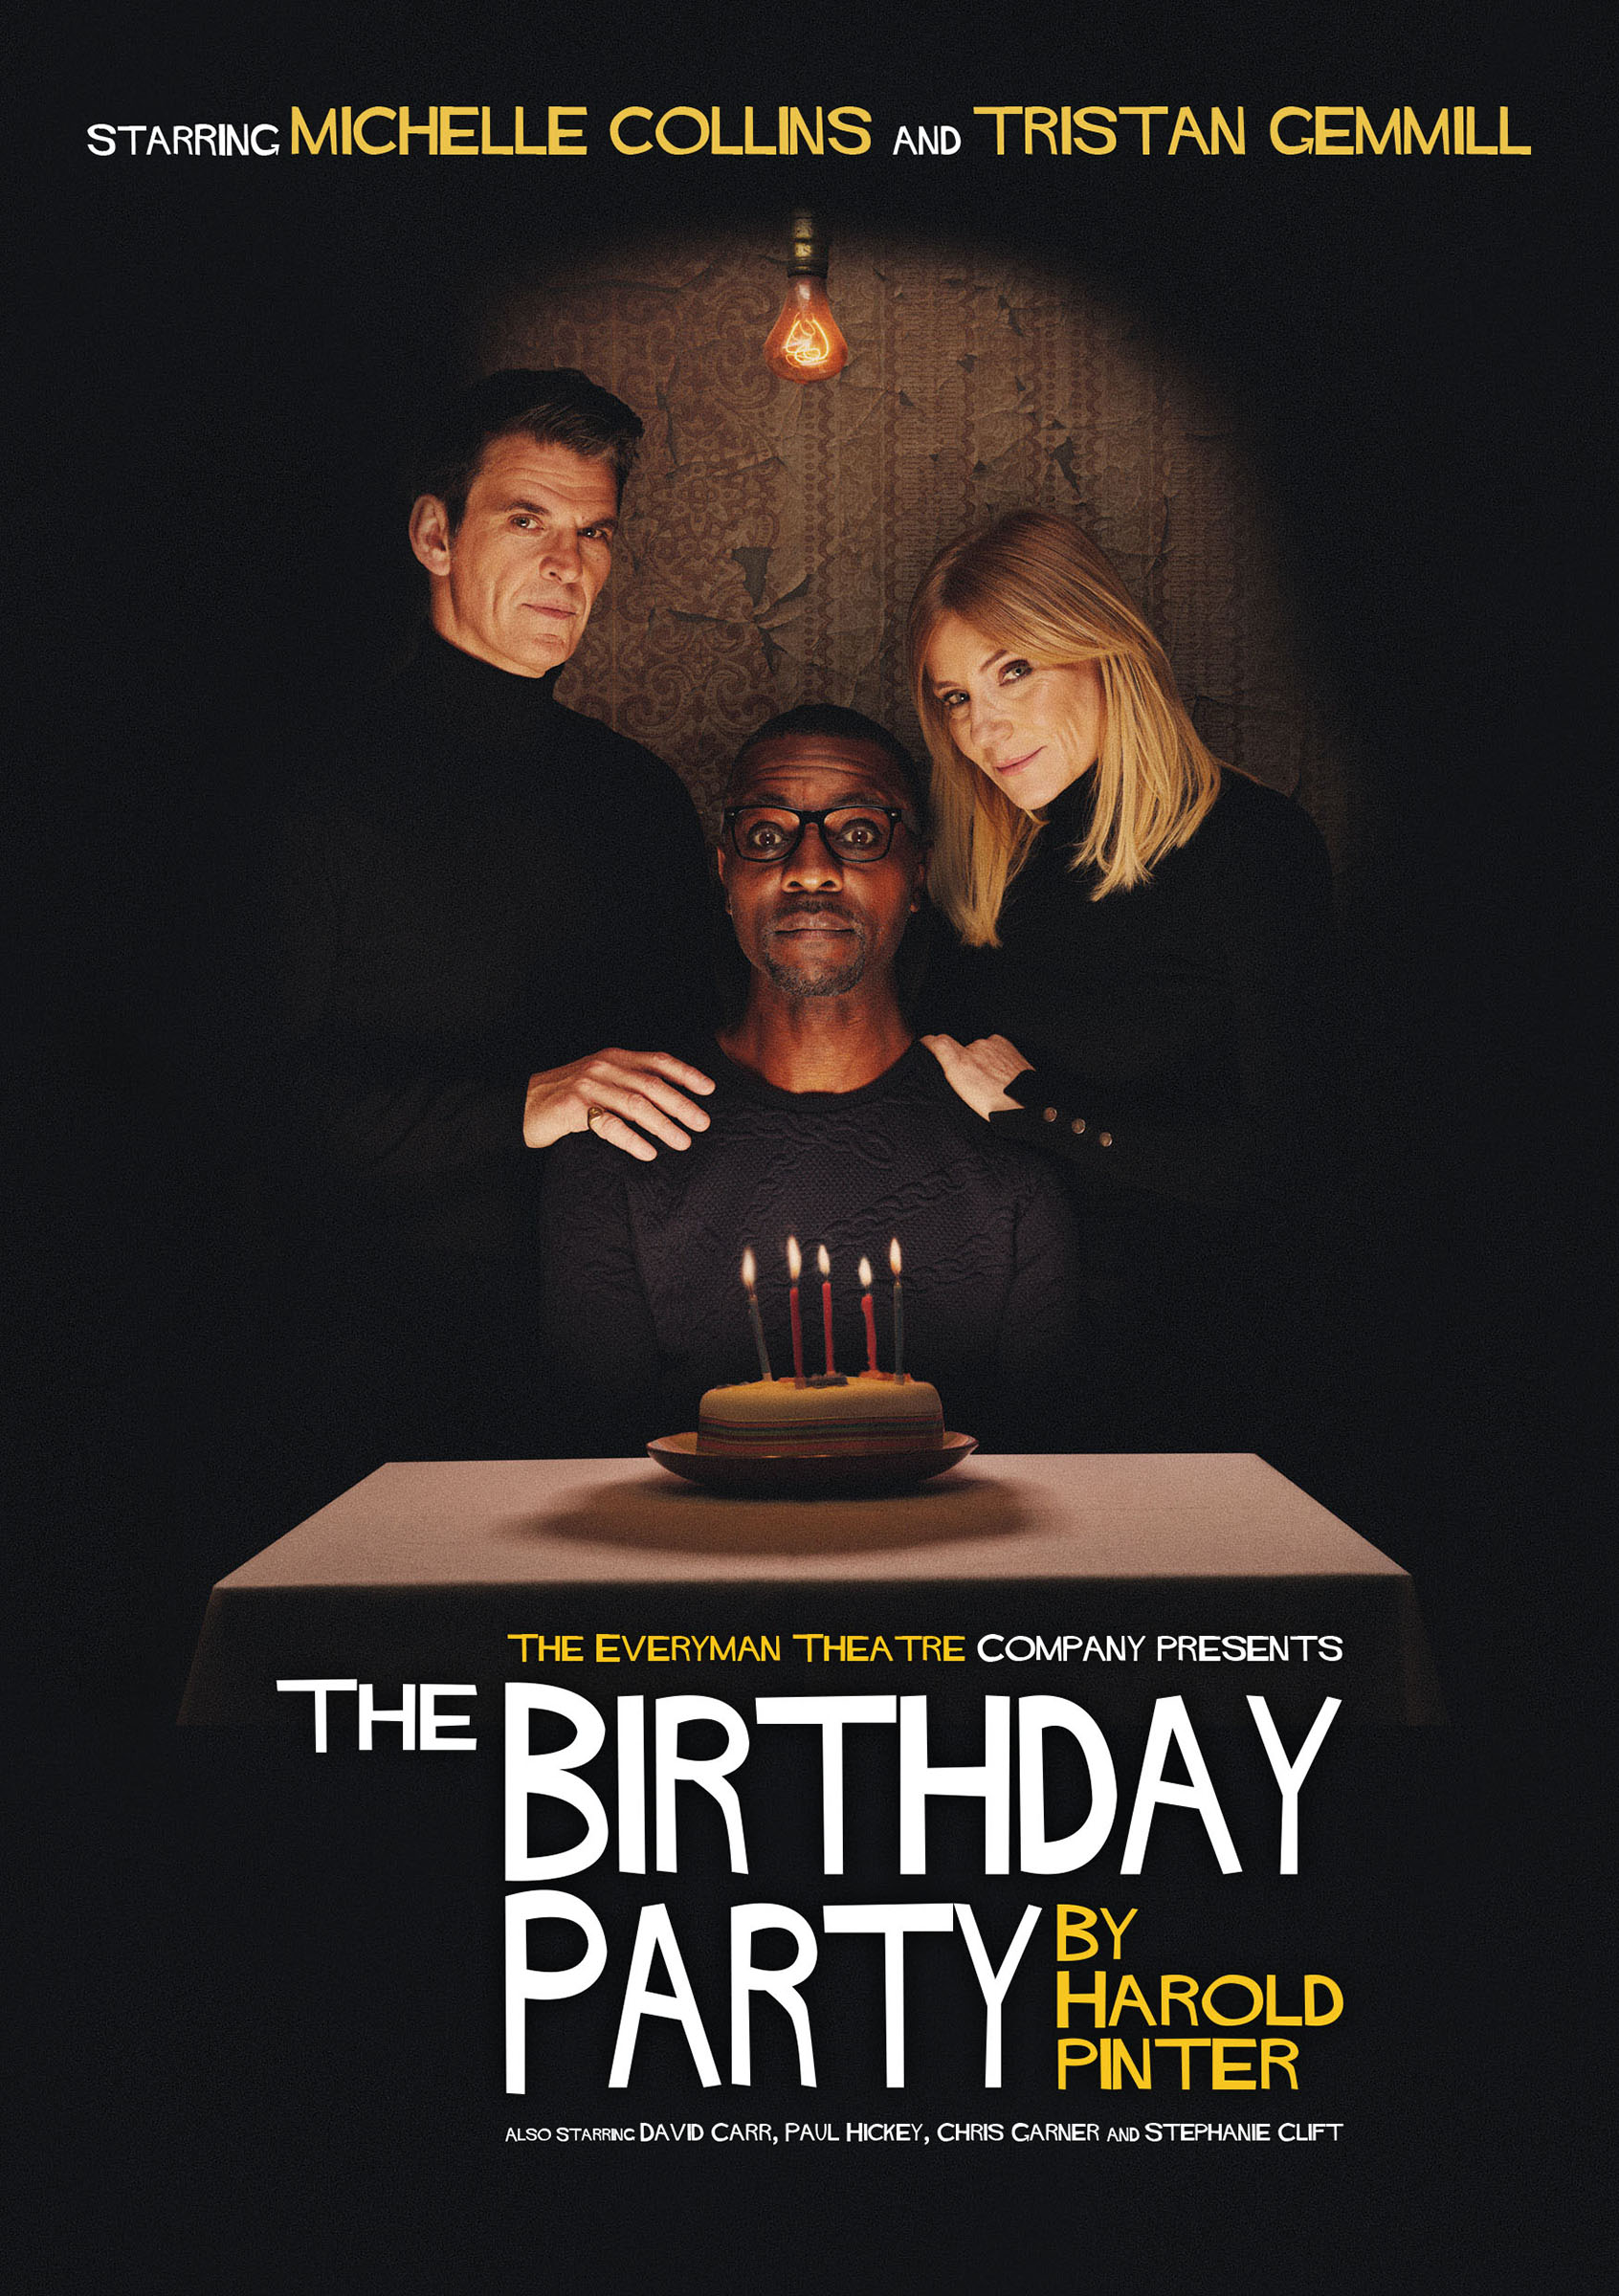 Promotional image for 'The Birthday Party'